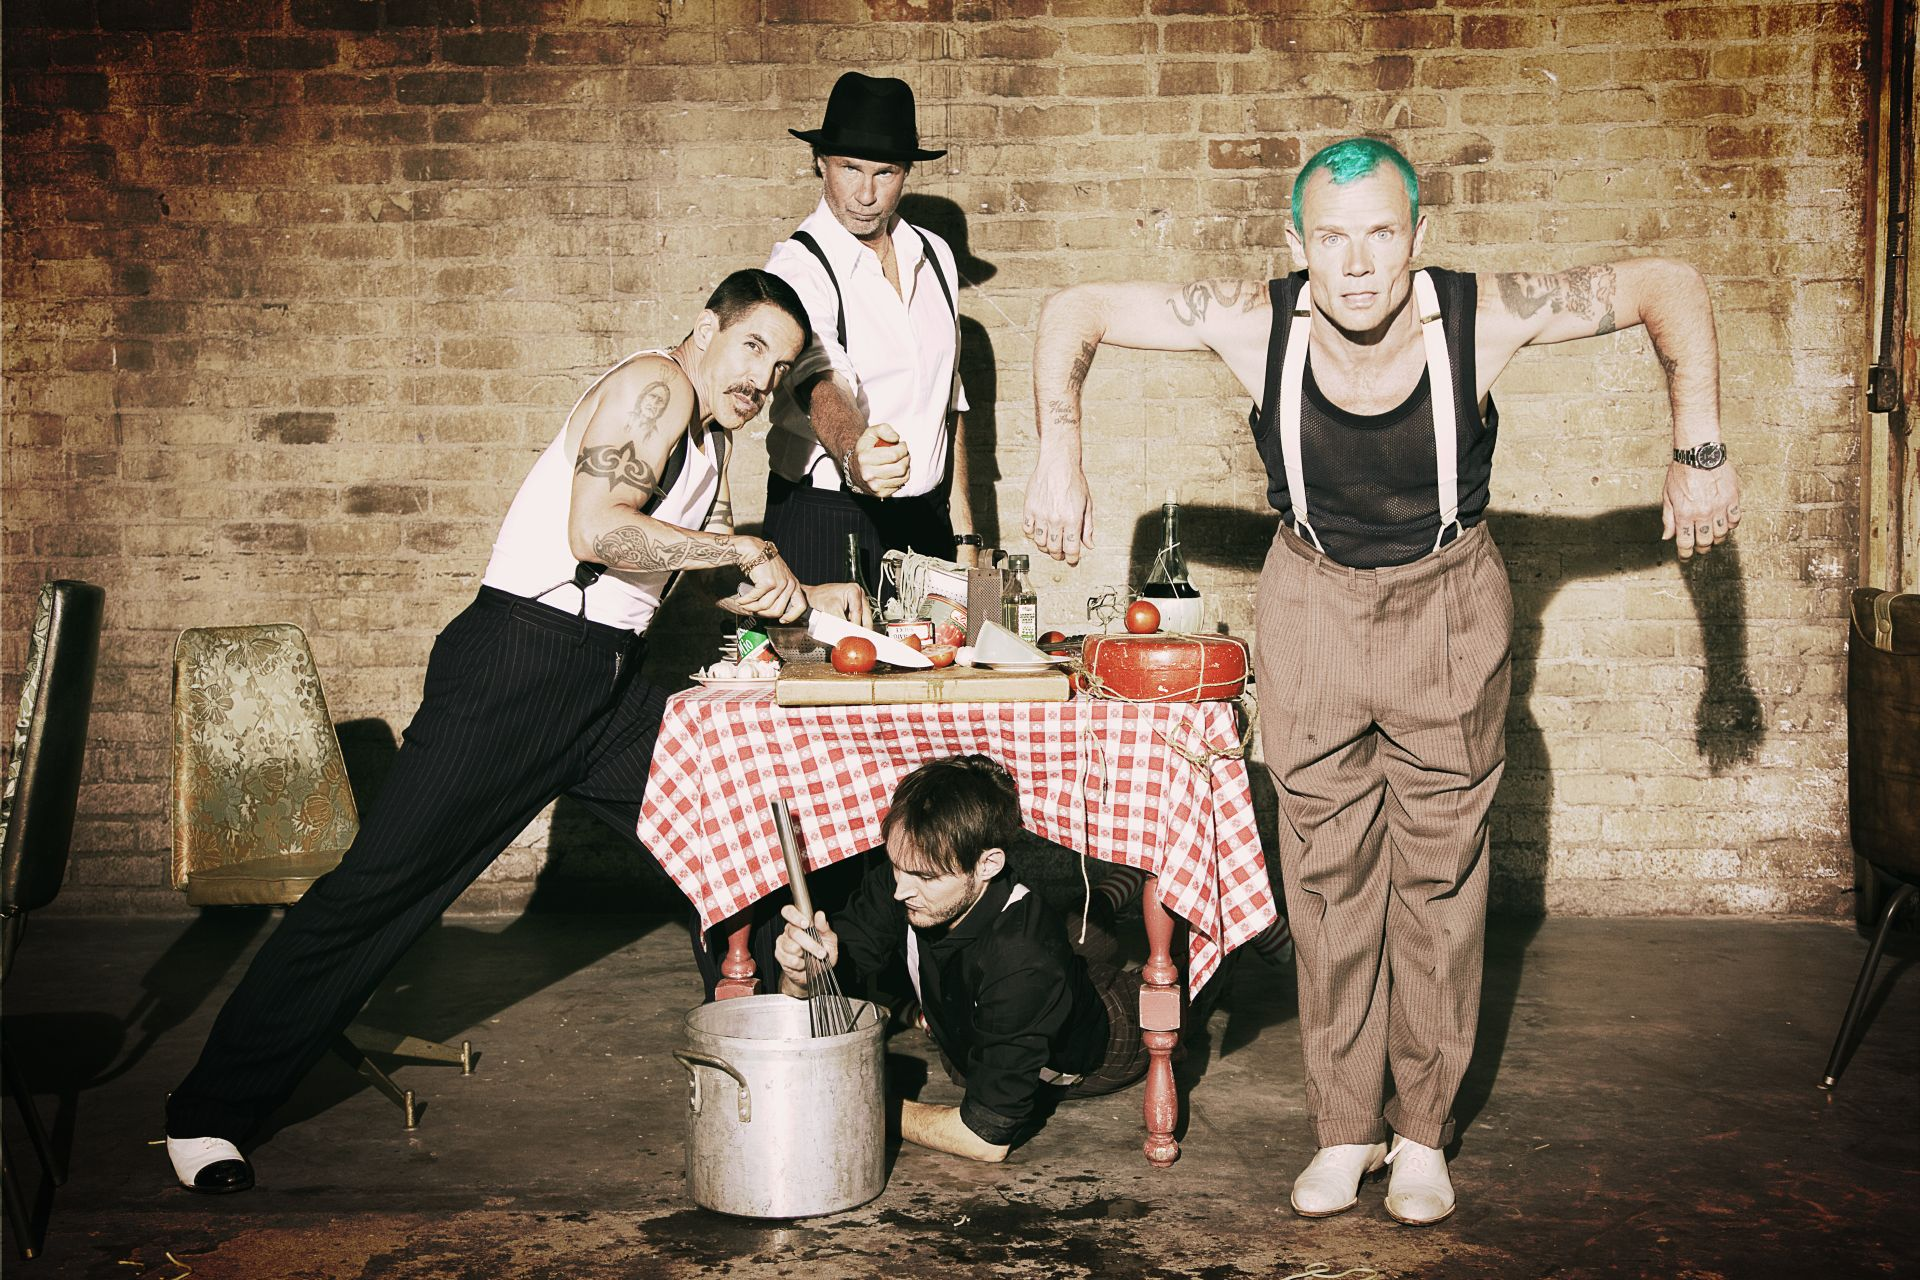 Red_Hot_Chili_Peppers_New_Press_Picture_kicsi.jpg